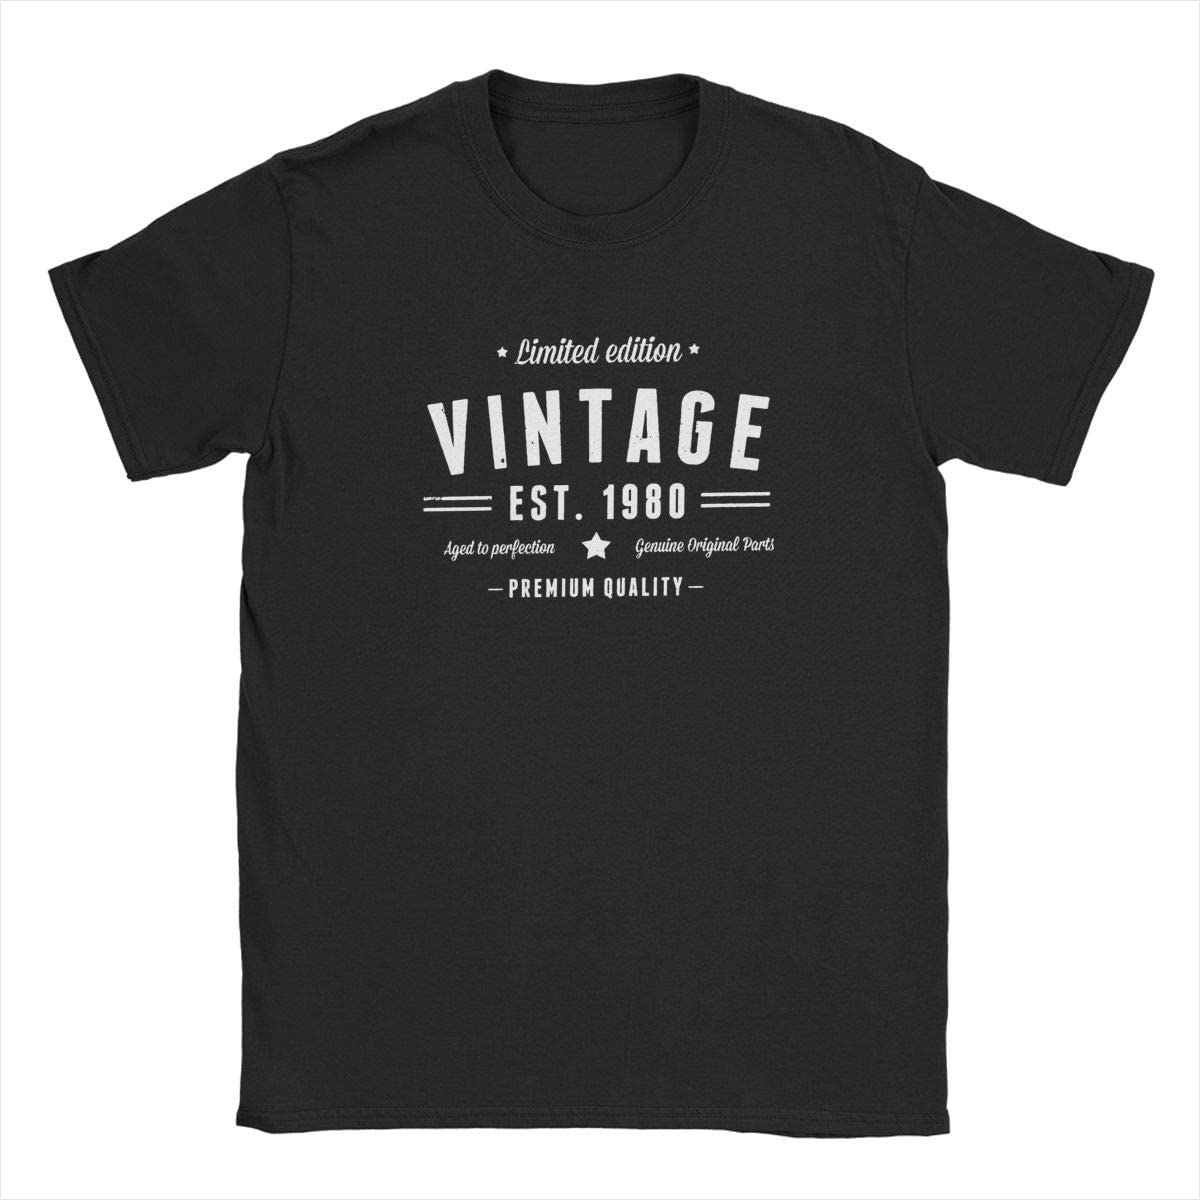 CHAMPRINT Limited Edition Vintage Est 1980 T Shirt 40th Birthday Gift Tees Tops for Men